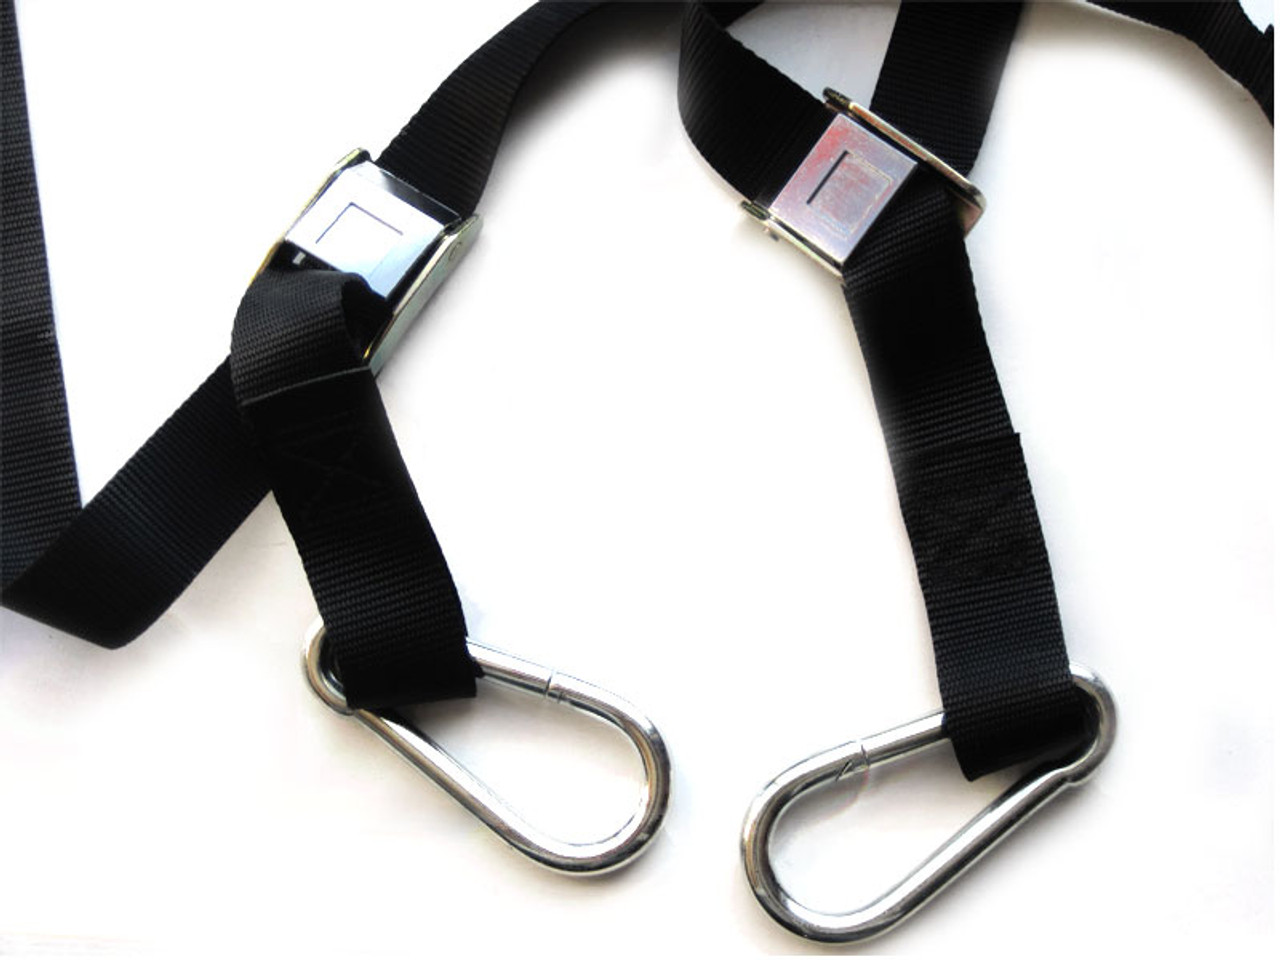 motorcycle transportation tiedown straps with harness